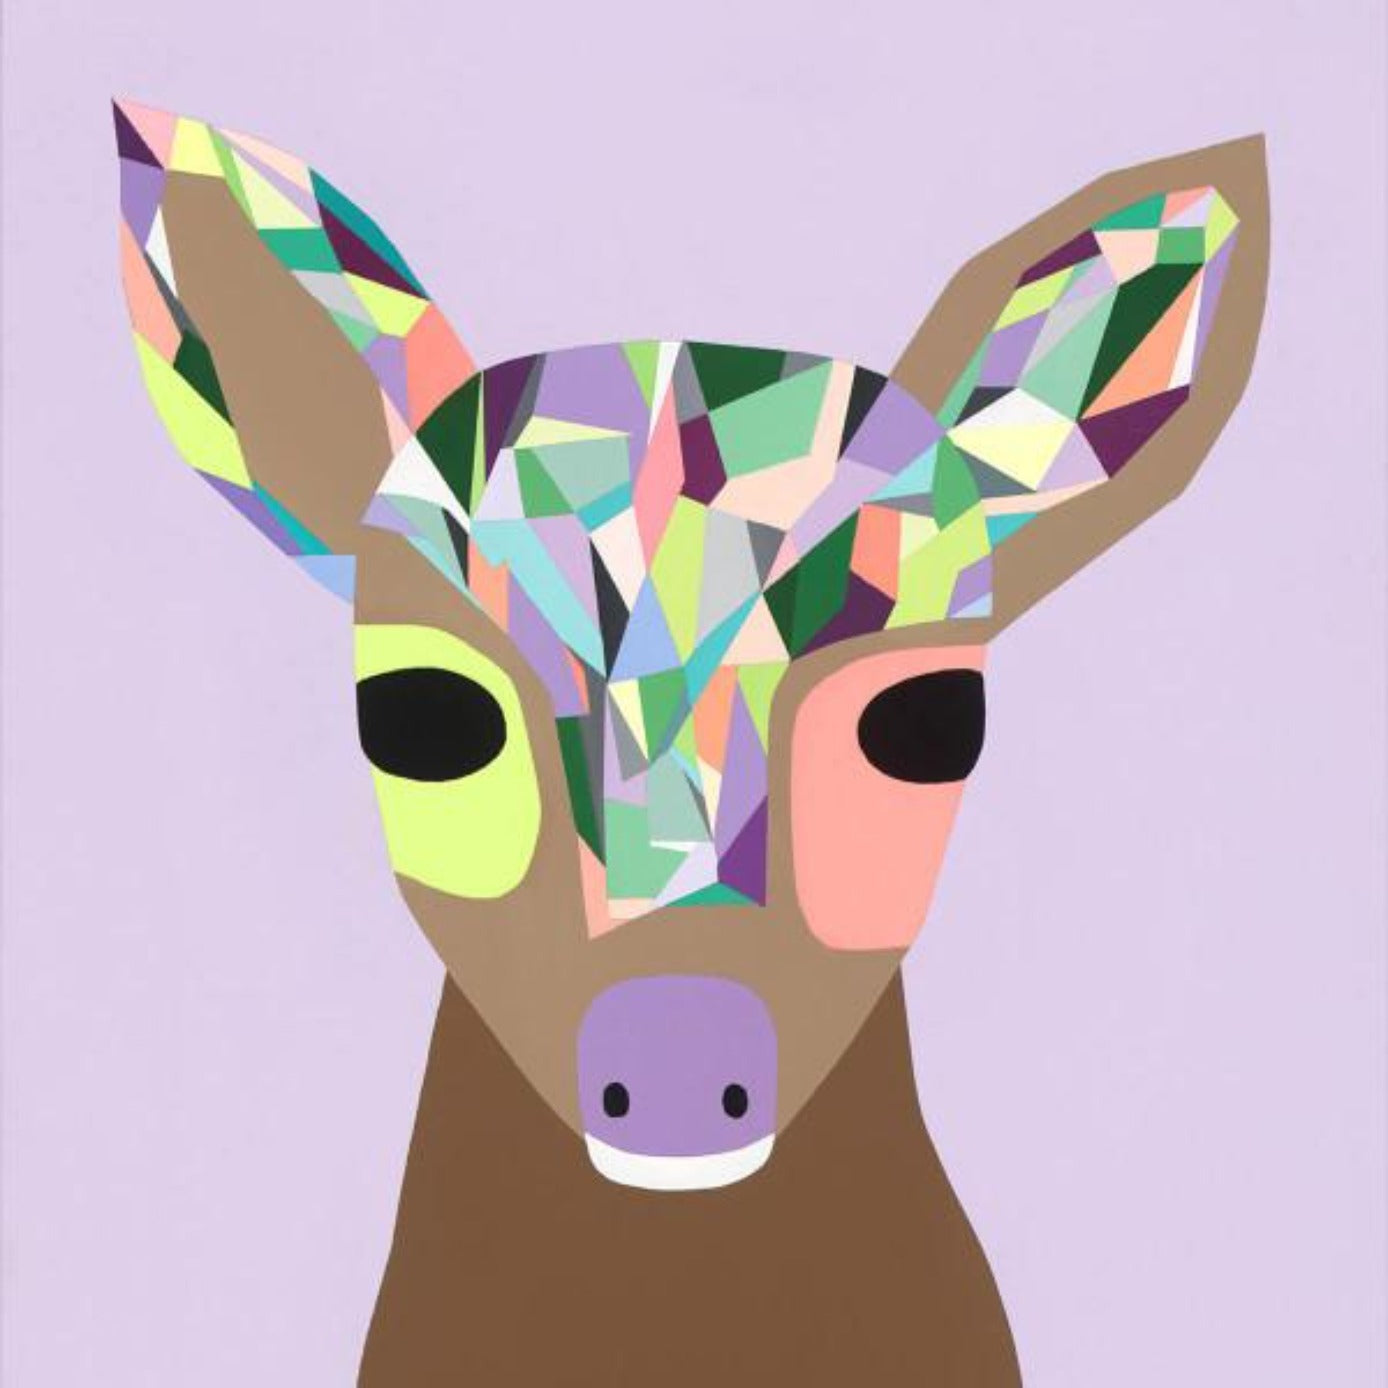 Jujuzozo Modern Art Prints for Kids on DLK